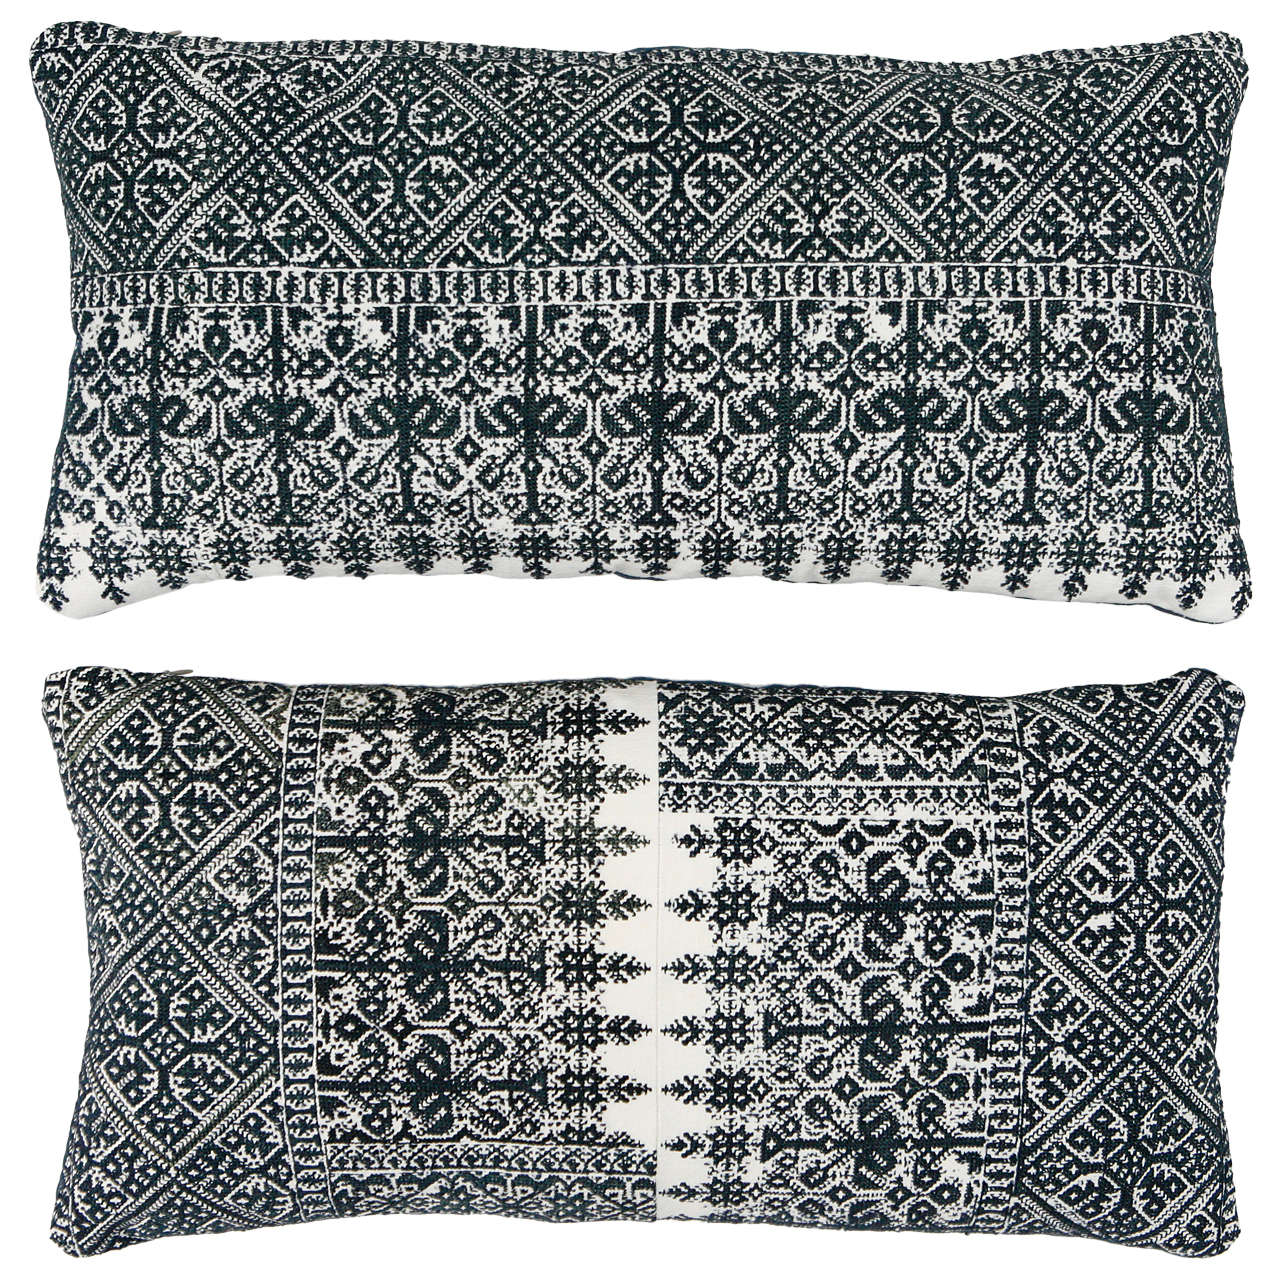 Moroccan Fez Embroidery Pillows At 1stdibs